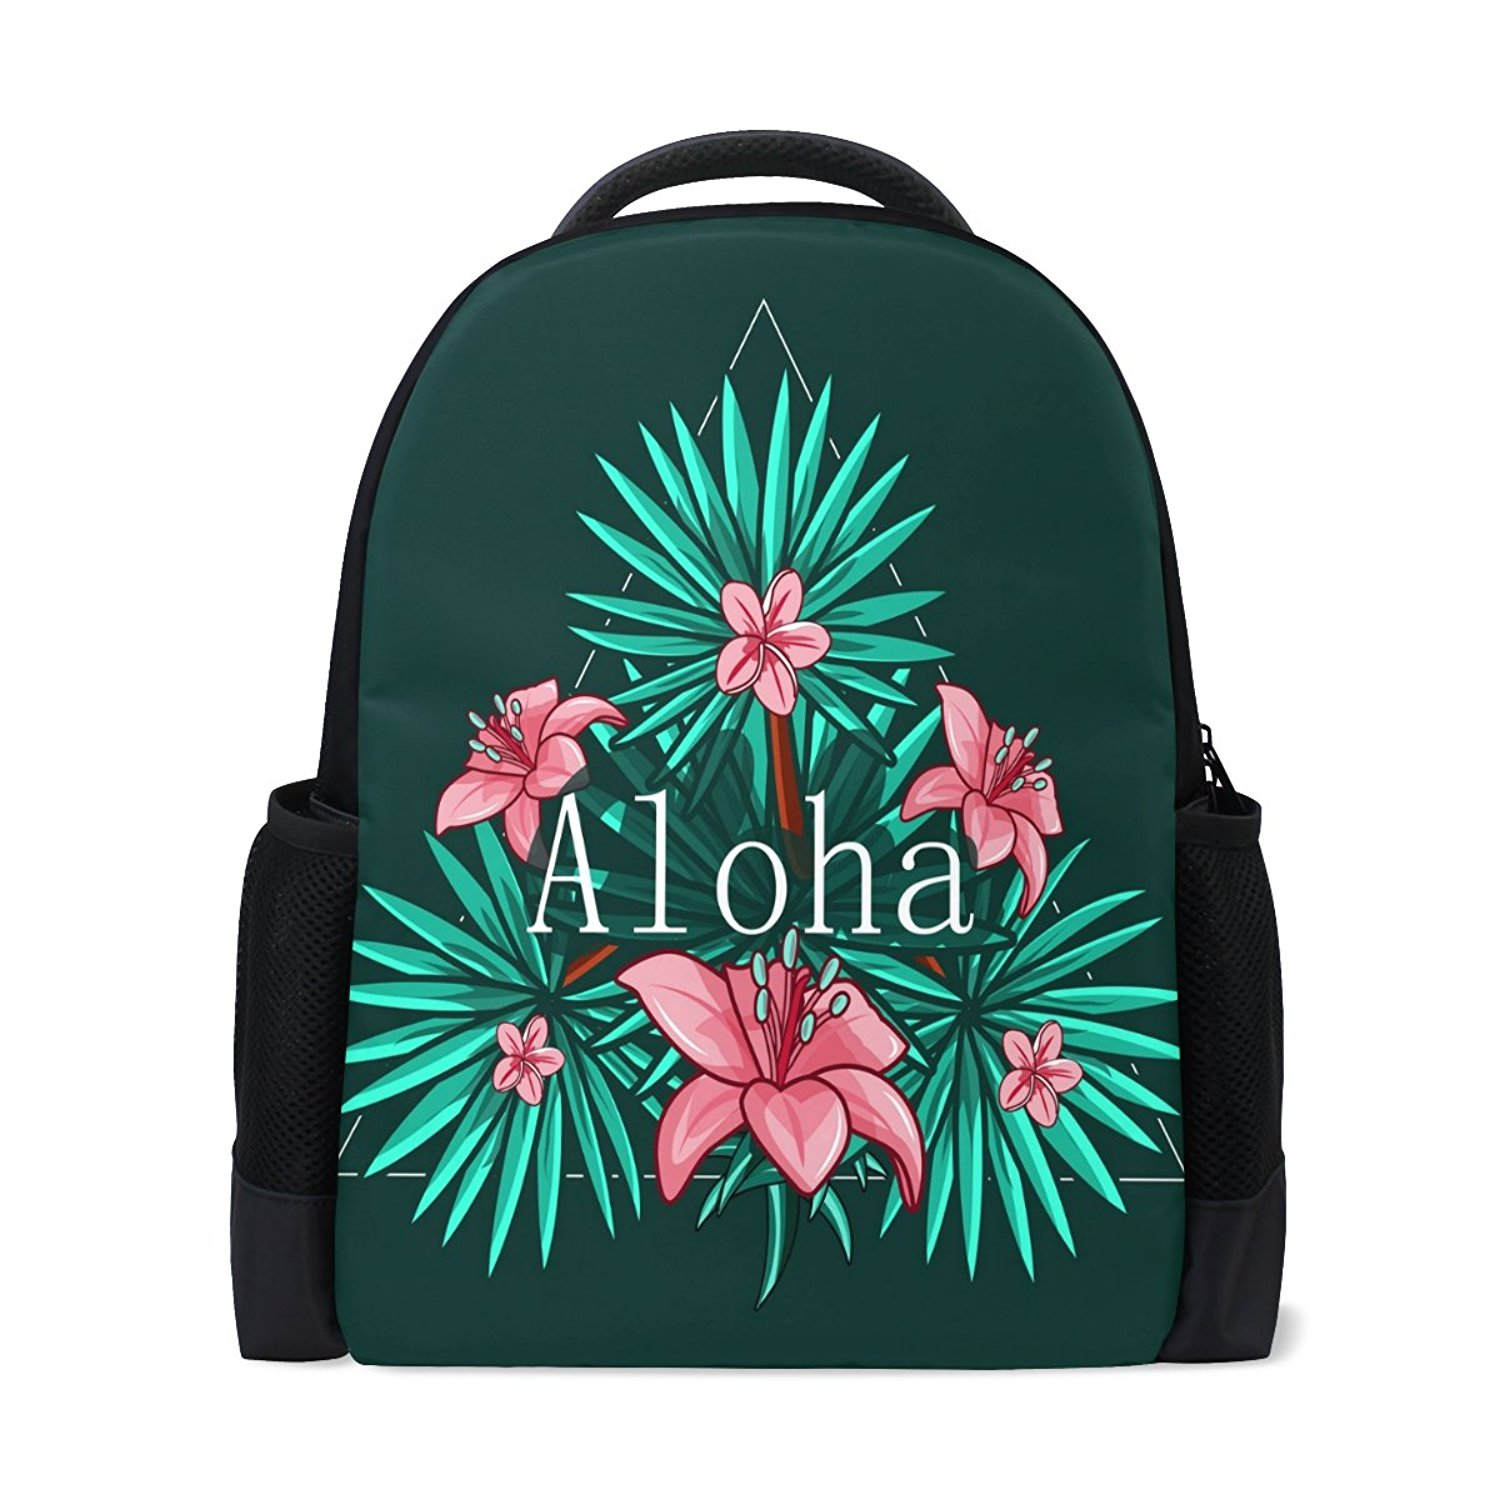 af281794550 Get Quotations · Ethel Ernest Hawaiian Aloha With Green Leaves Custom Casual  Laptop Backpack School Bag Travel Backpack